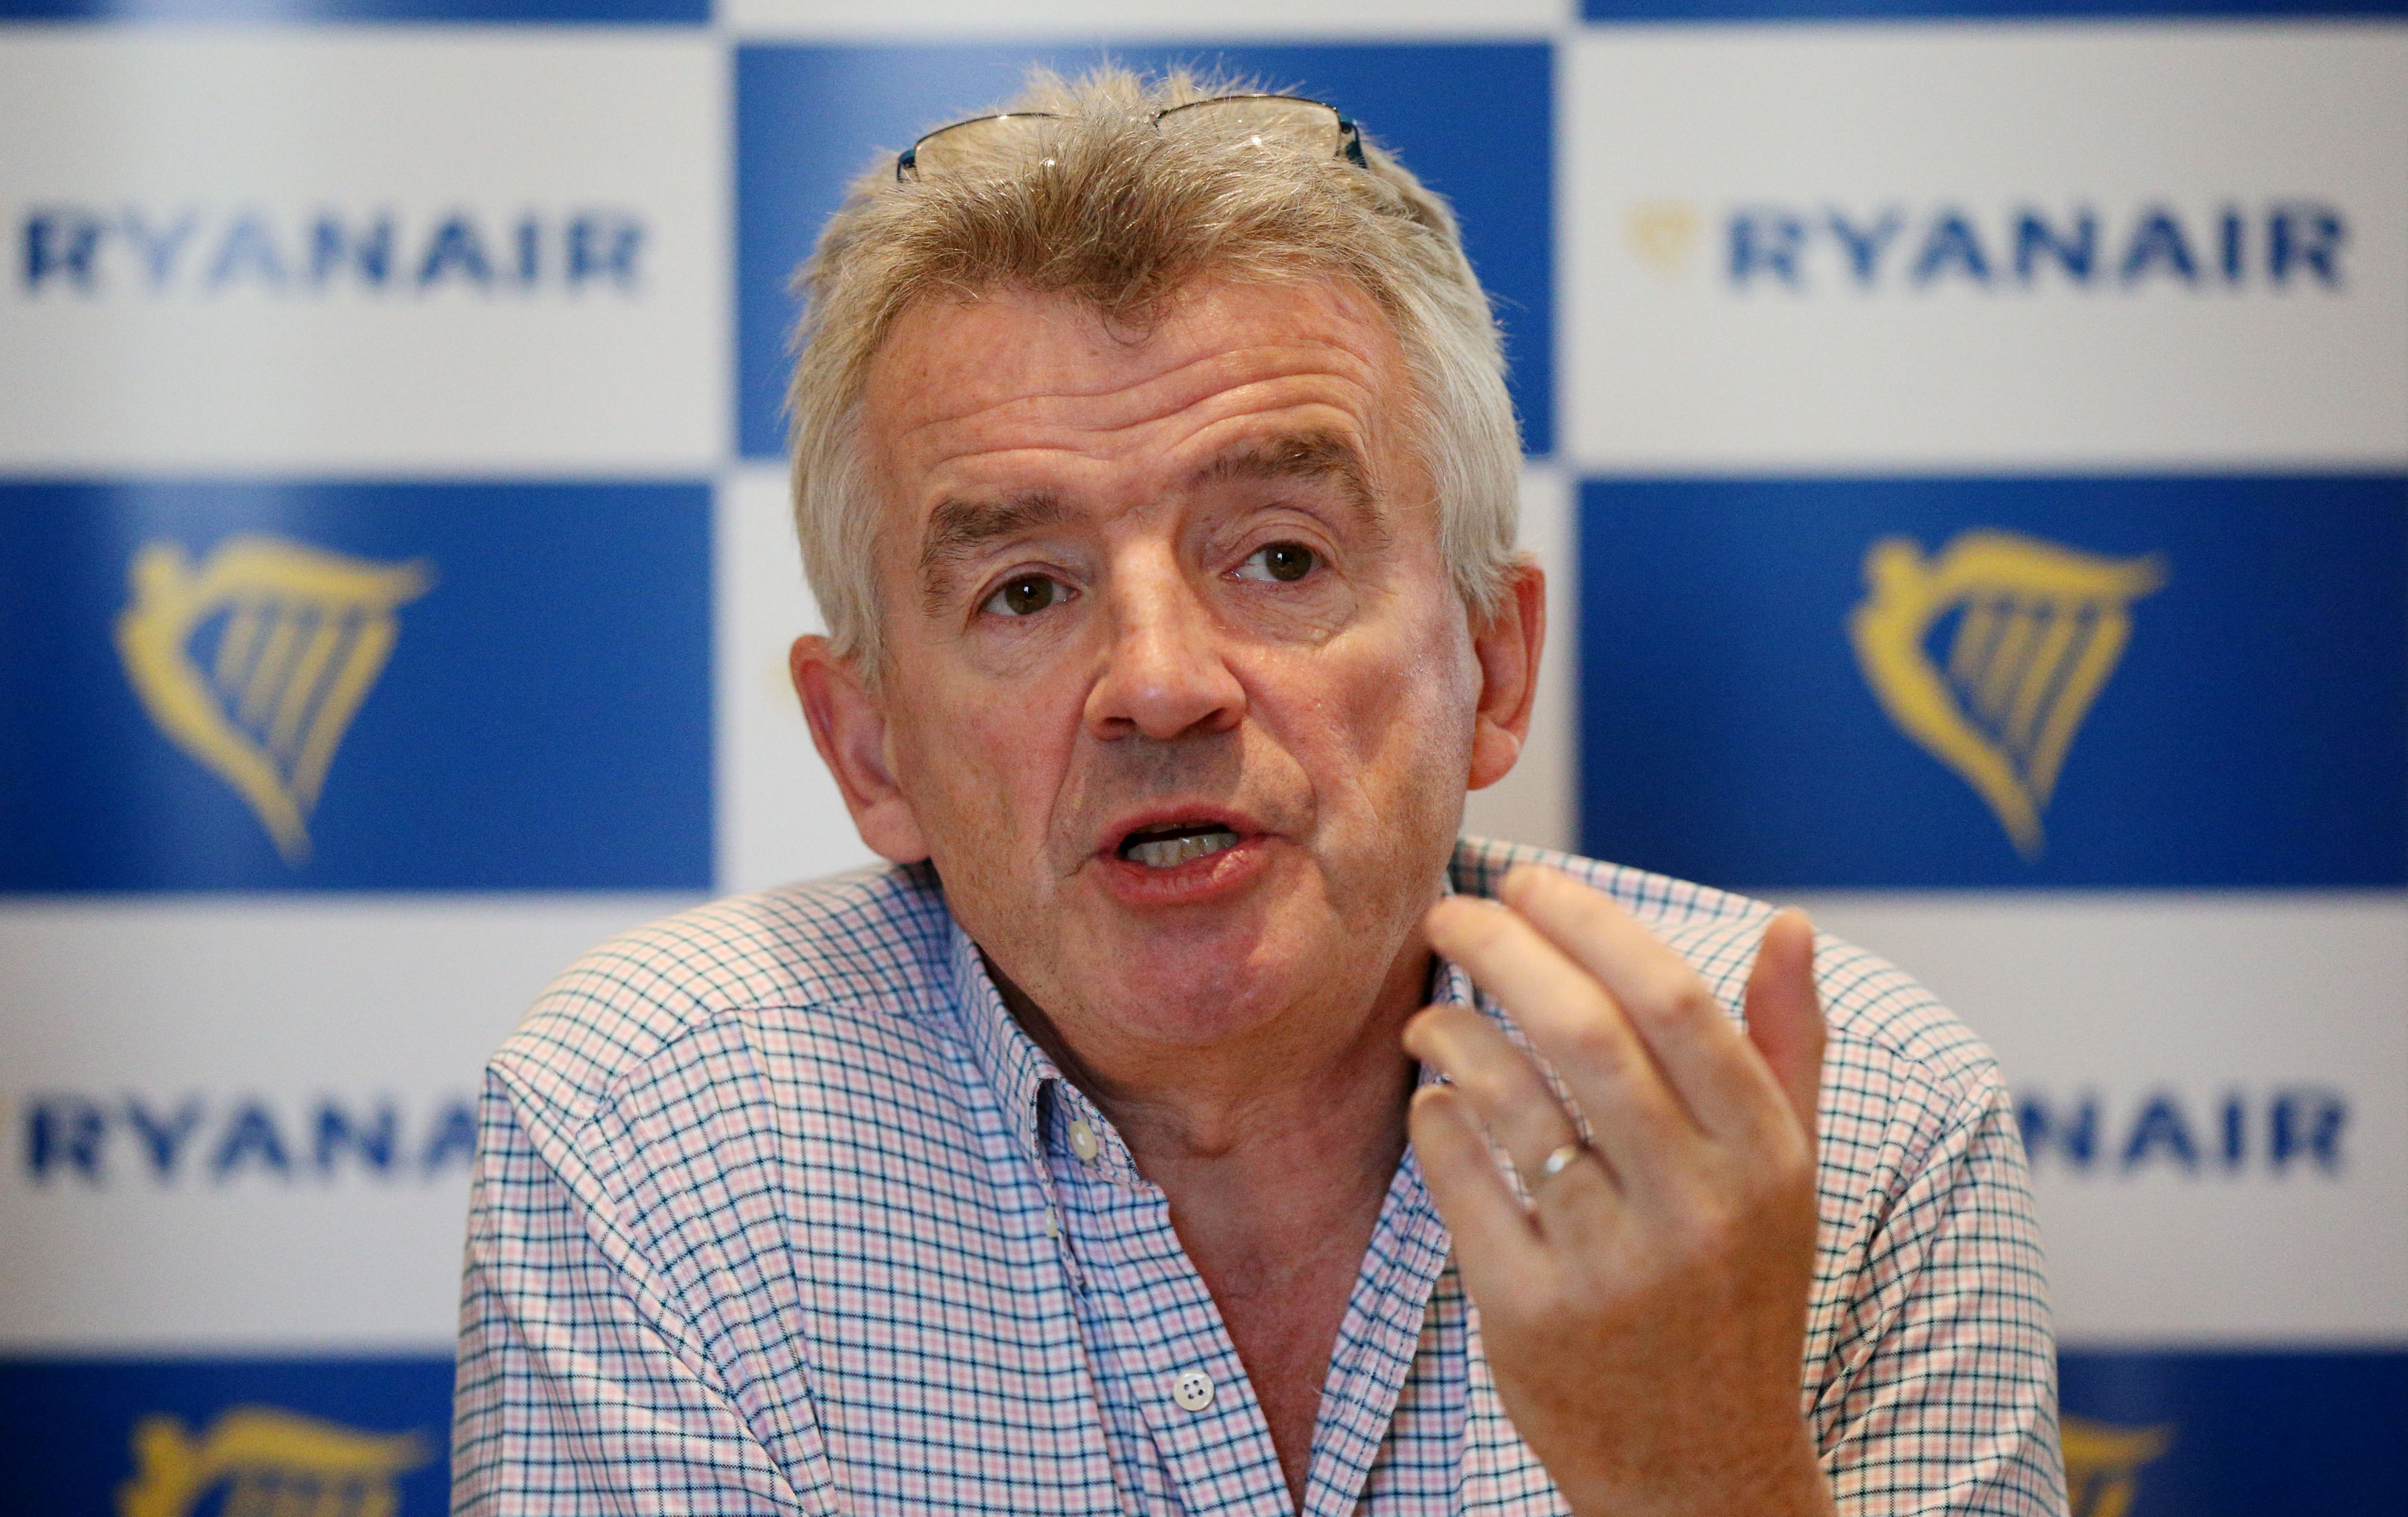 Ryanair warns of tough year ahead